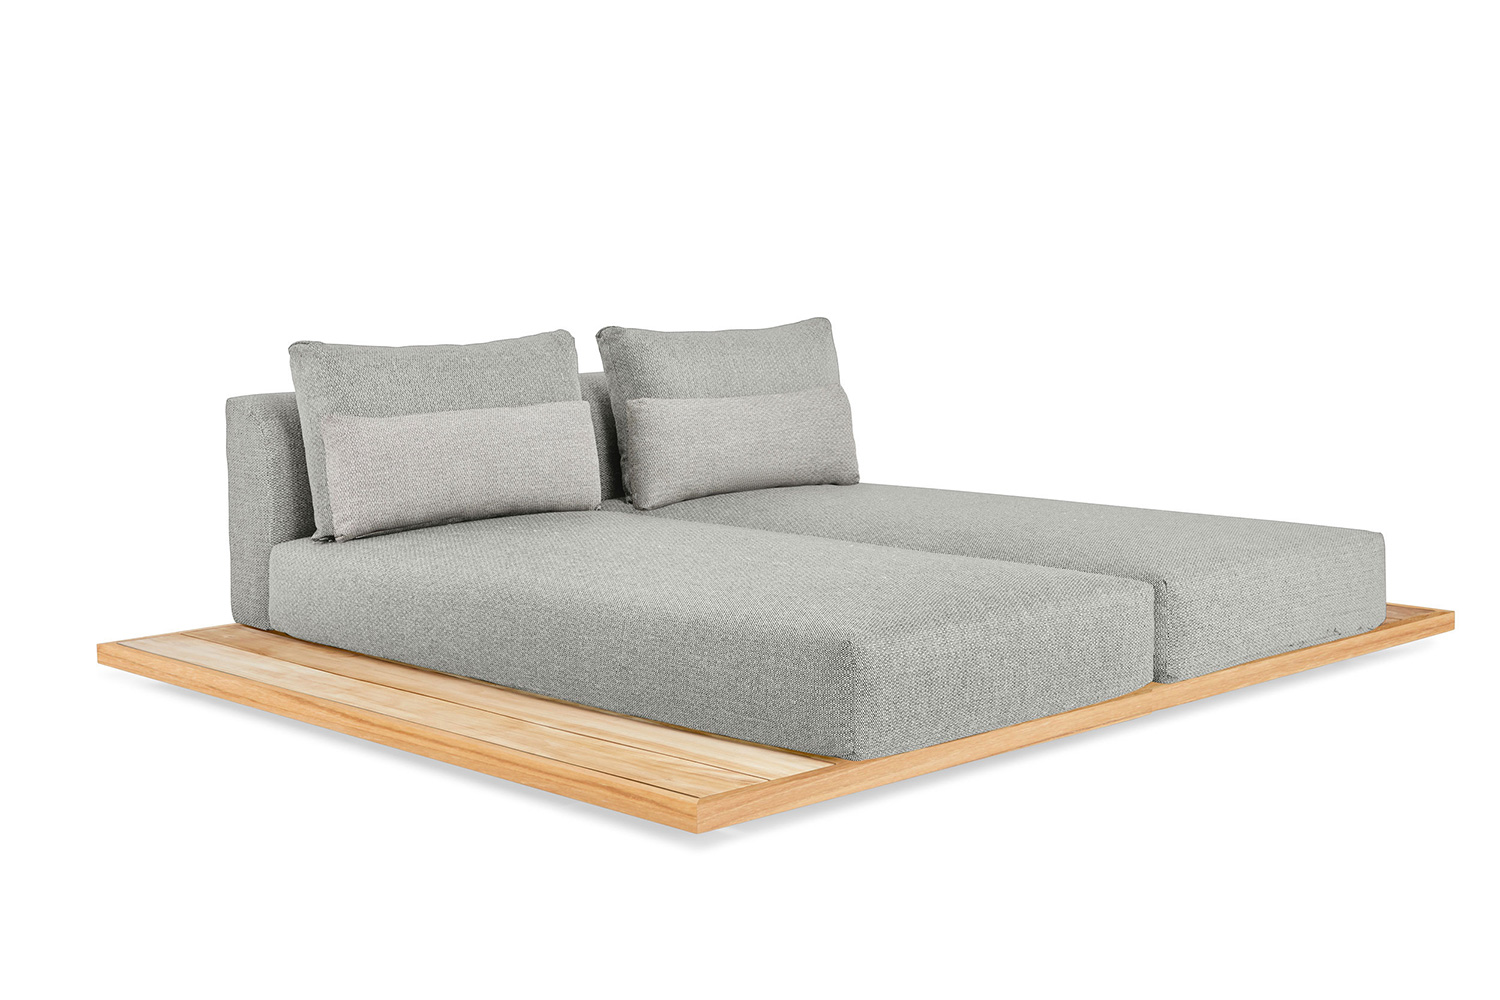 Daybed_SUNS_Aspen_softgrey_scatter_1500